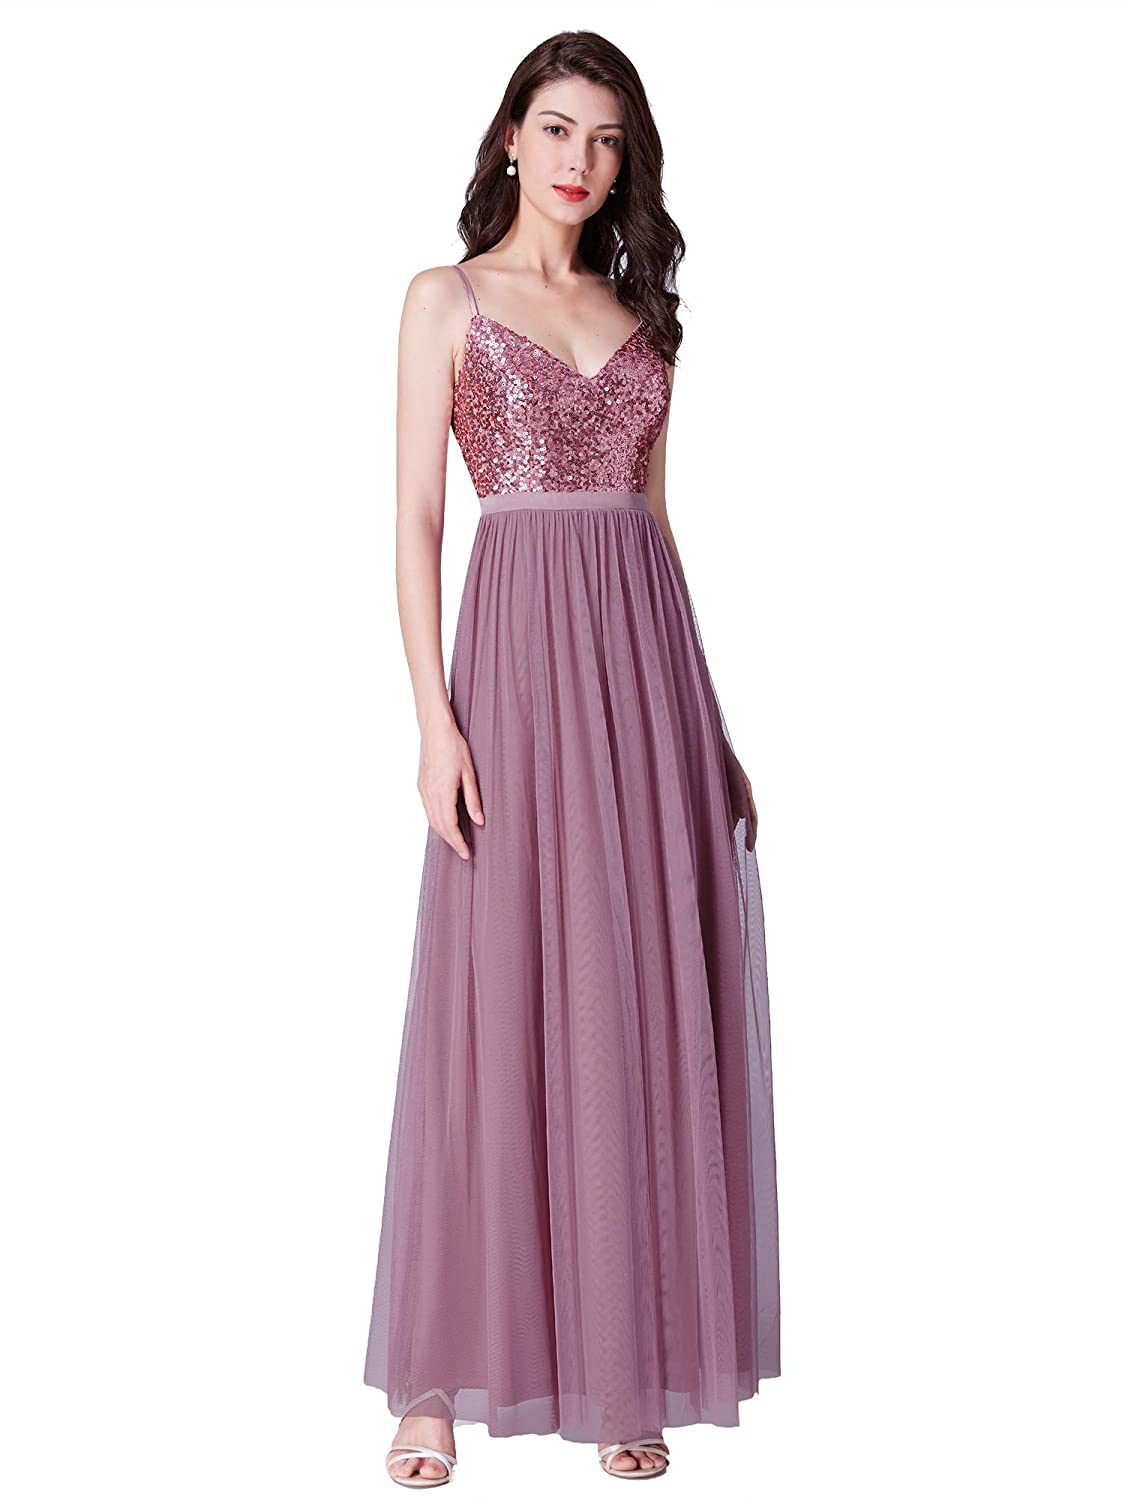 820eacf72d0 Ever-Pretty Elegant A Line Long Tulle Bridesmaid Dresses with Sequin Bodice  07392 at Amazon Women s Clothing store